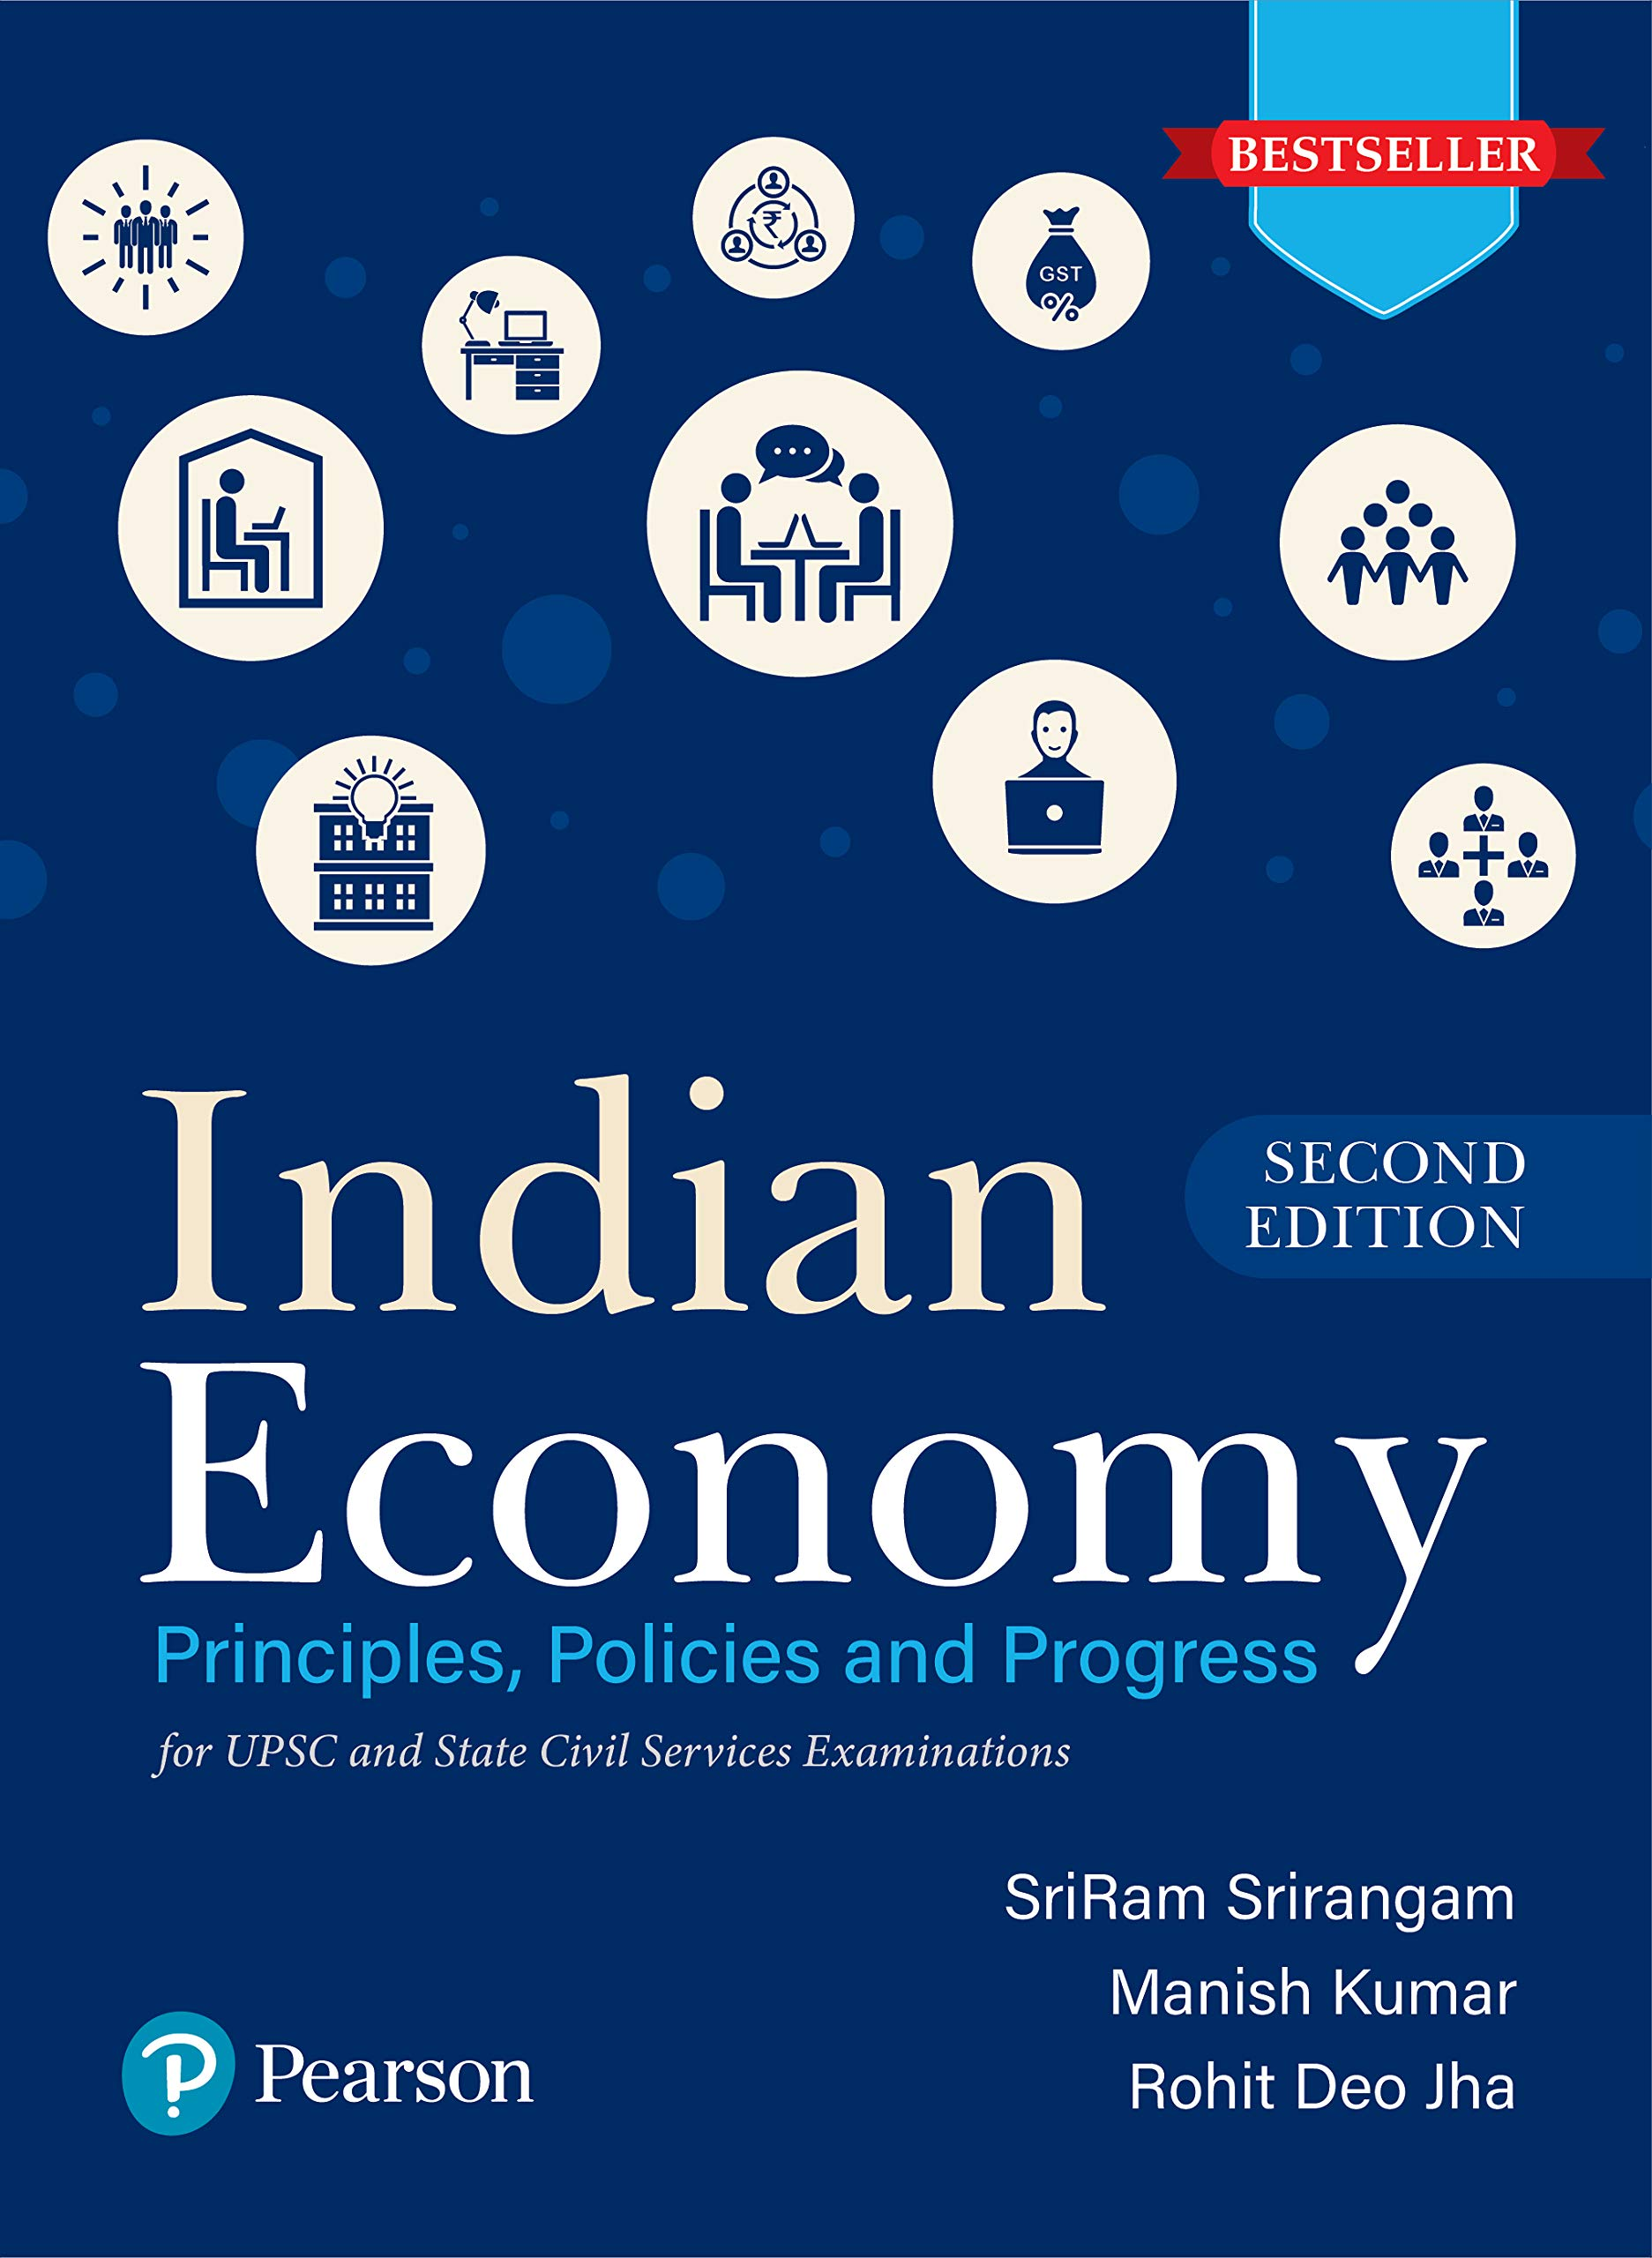 Indian Economy - Principles, Policies, and Progress   For UPSC & State Civil Services Examinations   Second Edition   By Pearson Paperback – 10 September 2020